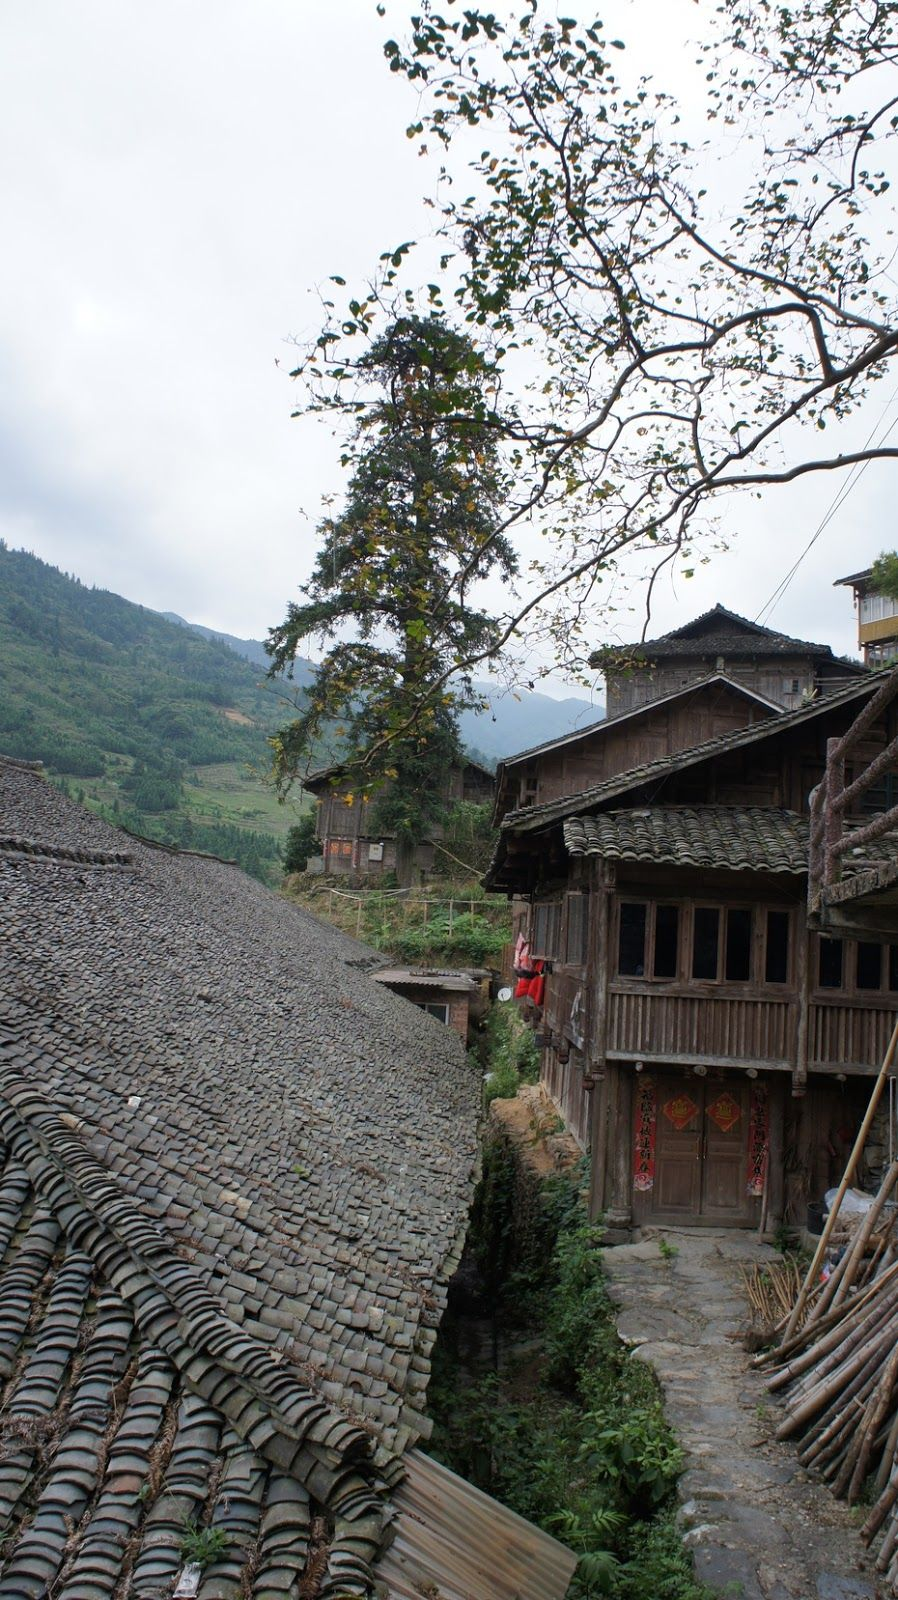 The first Village of Dragon Town, Longsheng County, Guilin tourist attractions in china